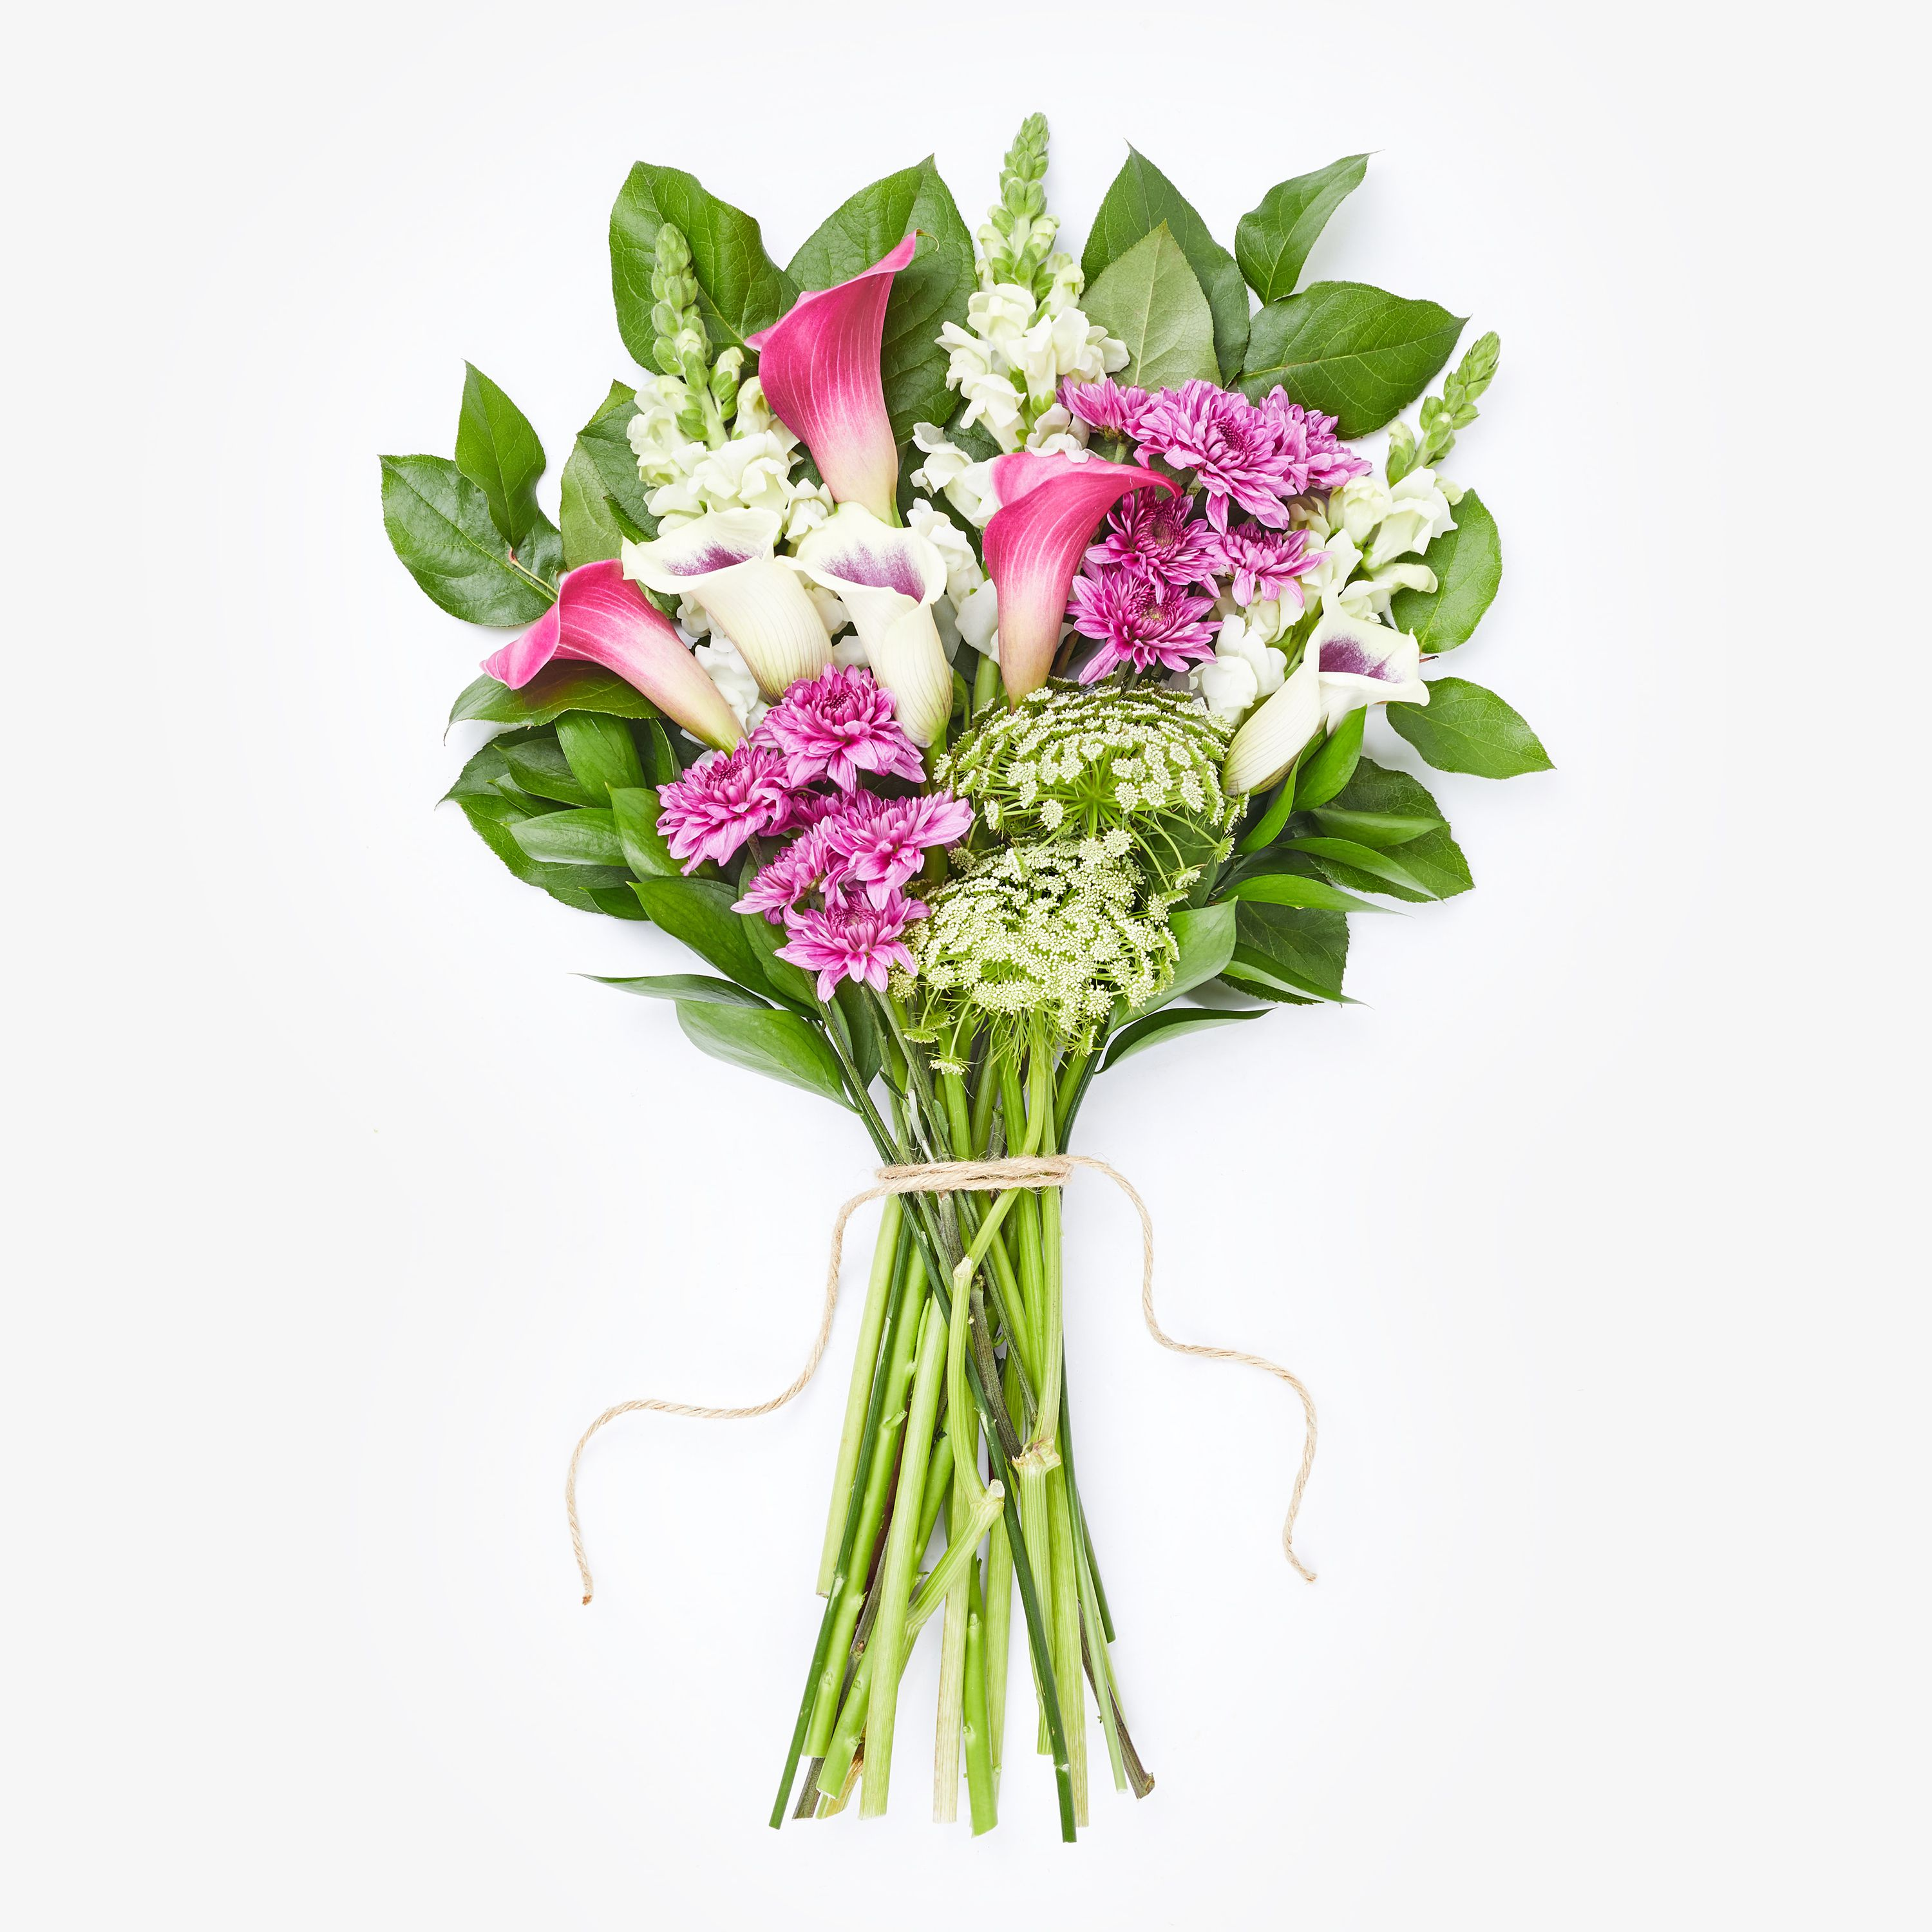 Best place to buy roses online-7353